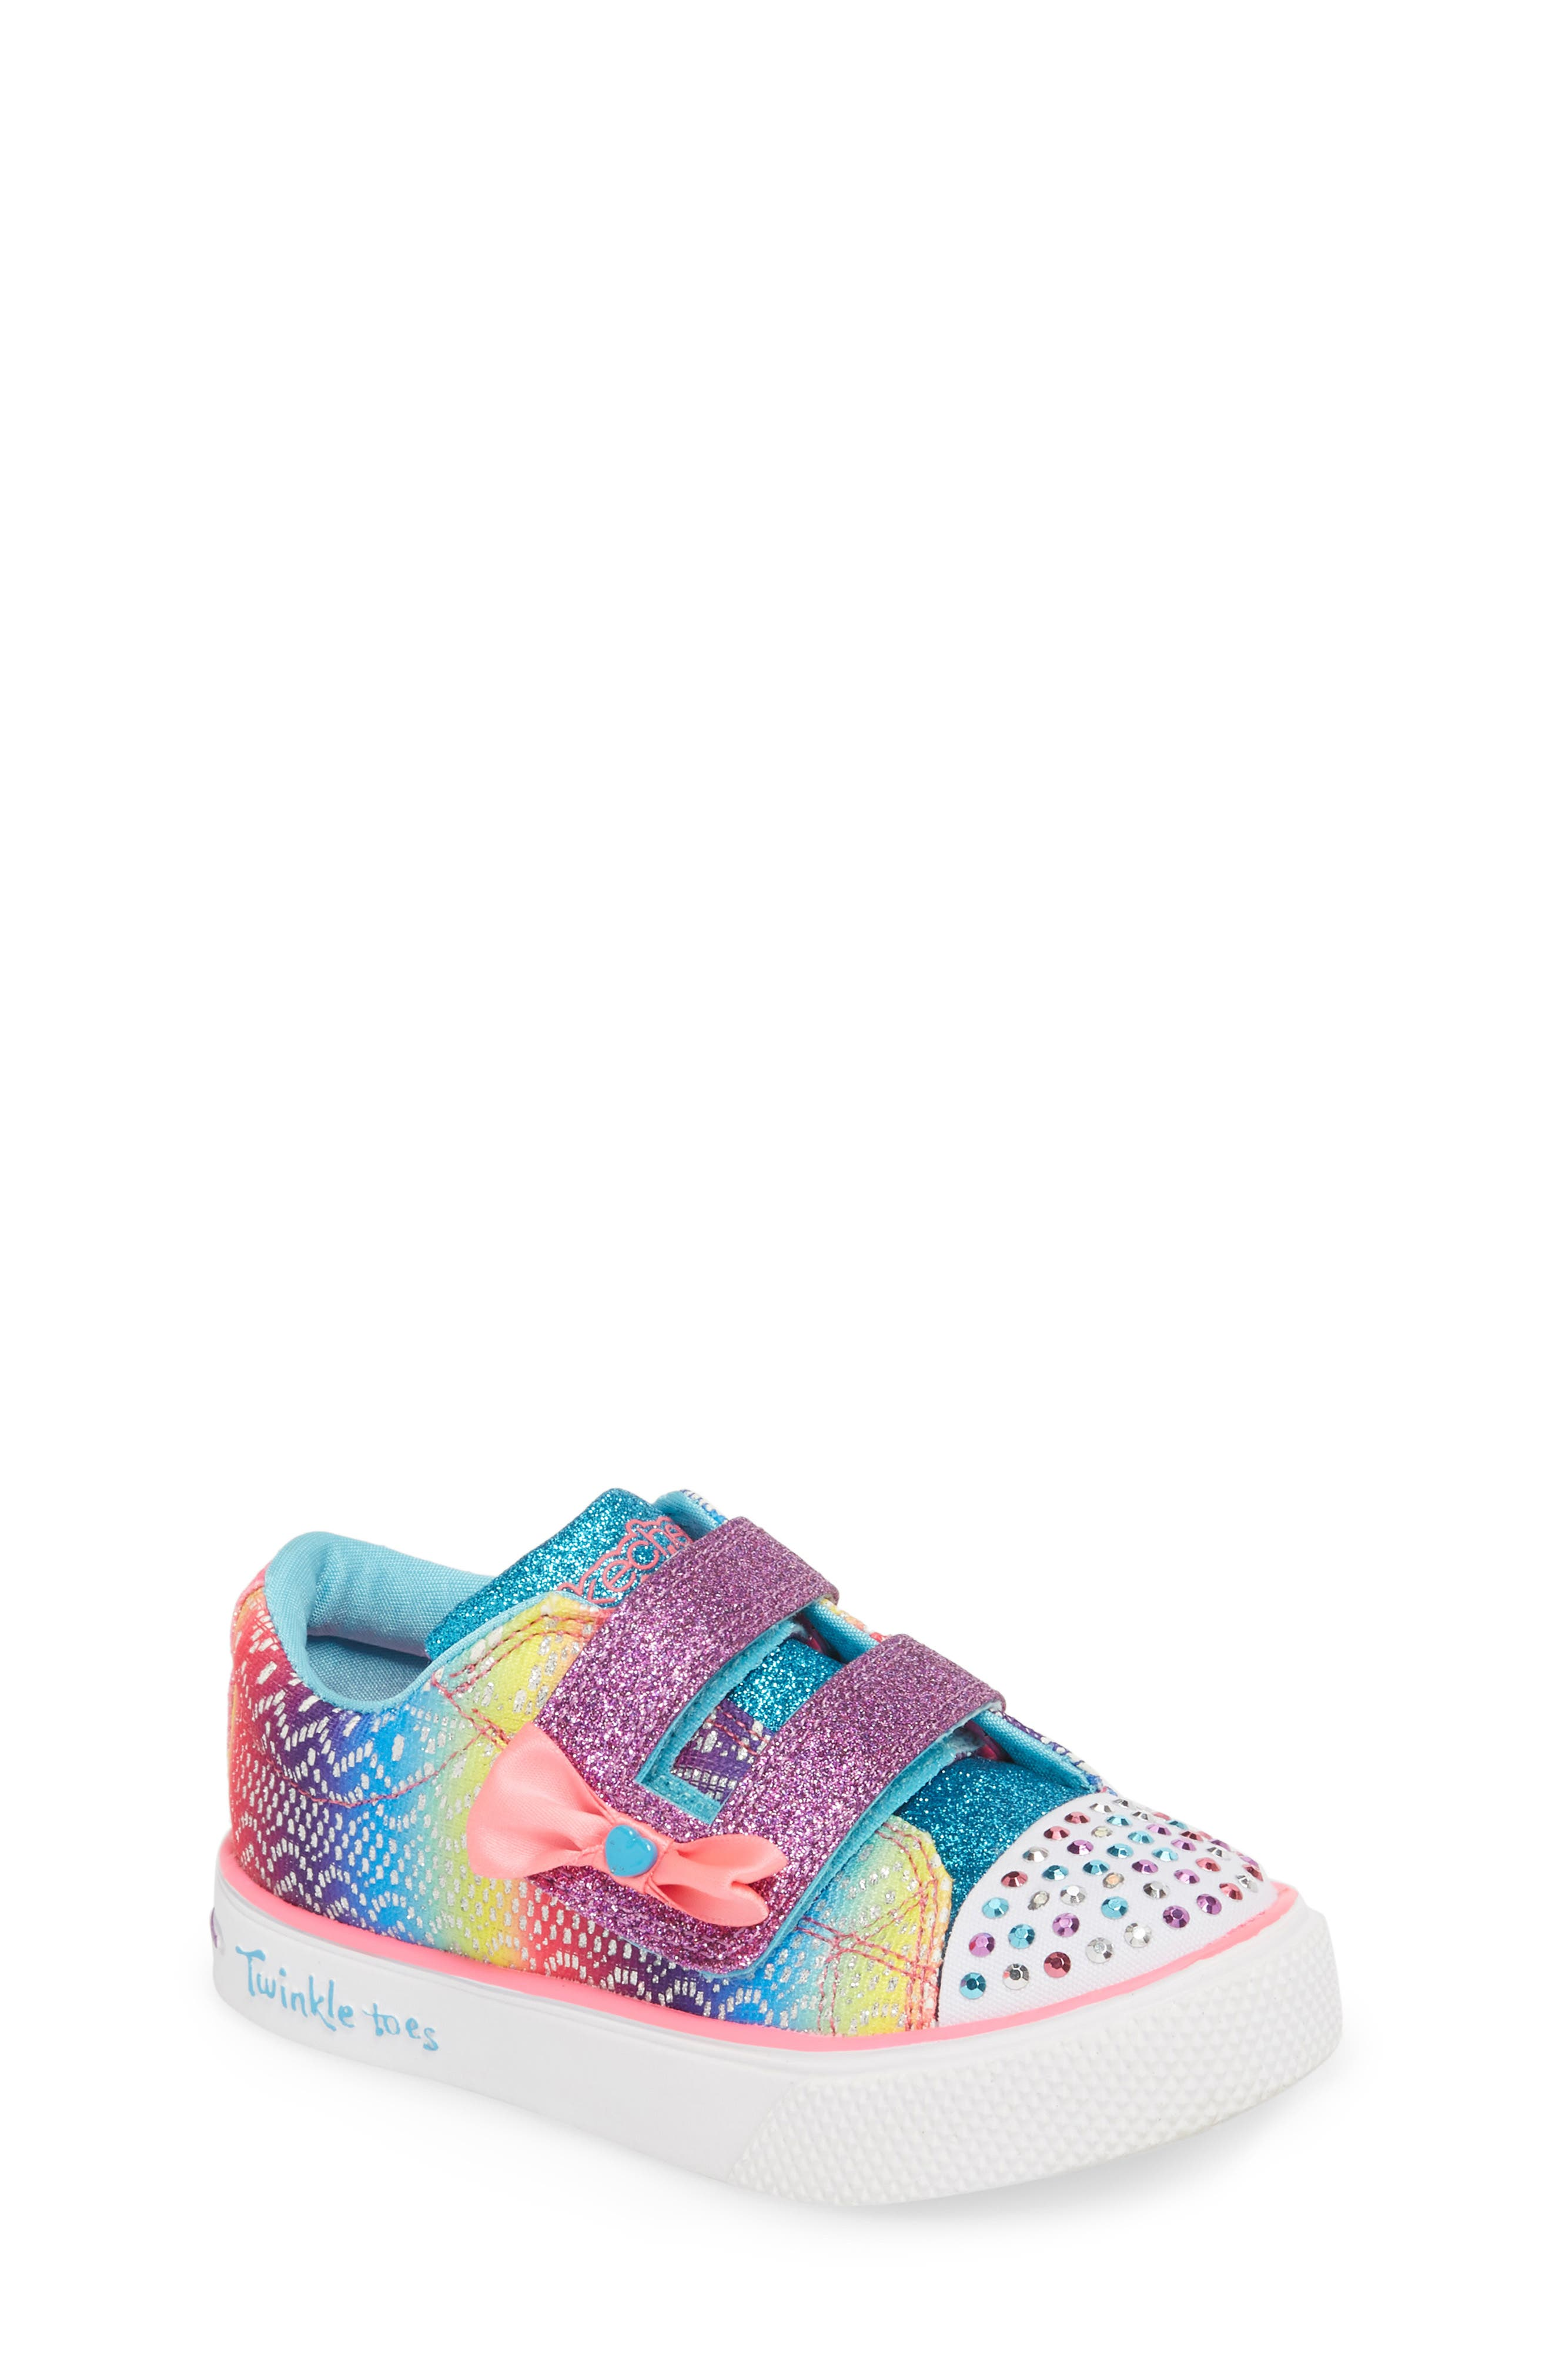 Twinkle Toes Breeze 2.0 Light-Up Sneaker,                         Main,                         color, 650